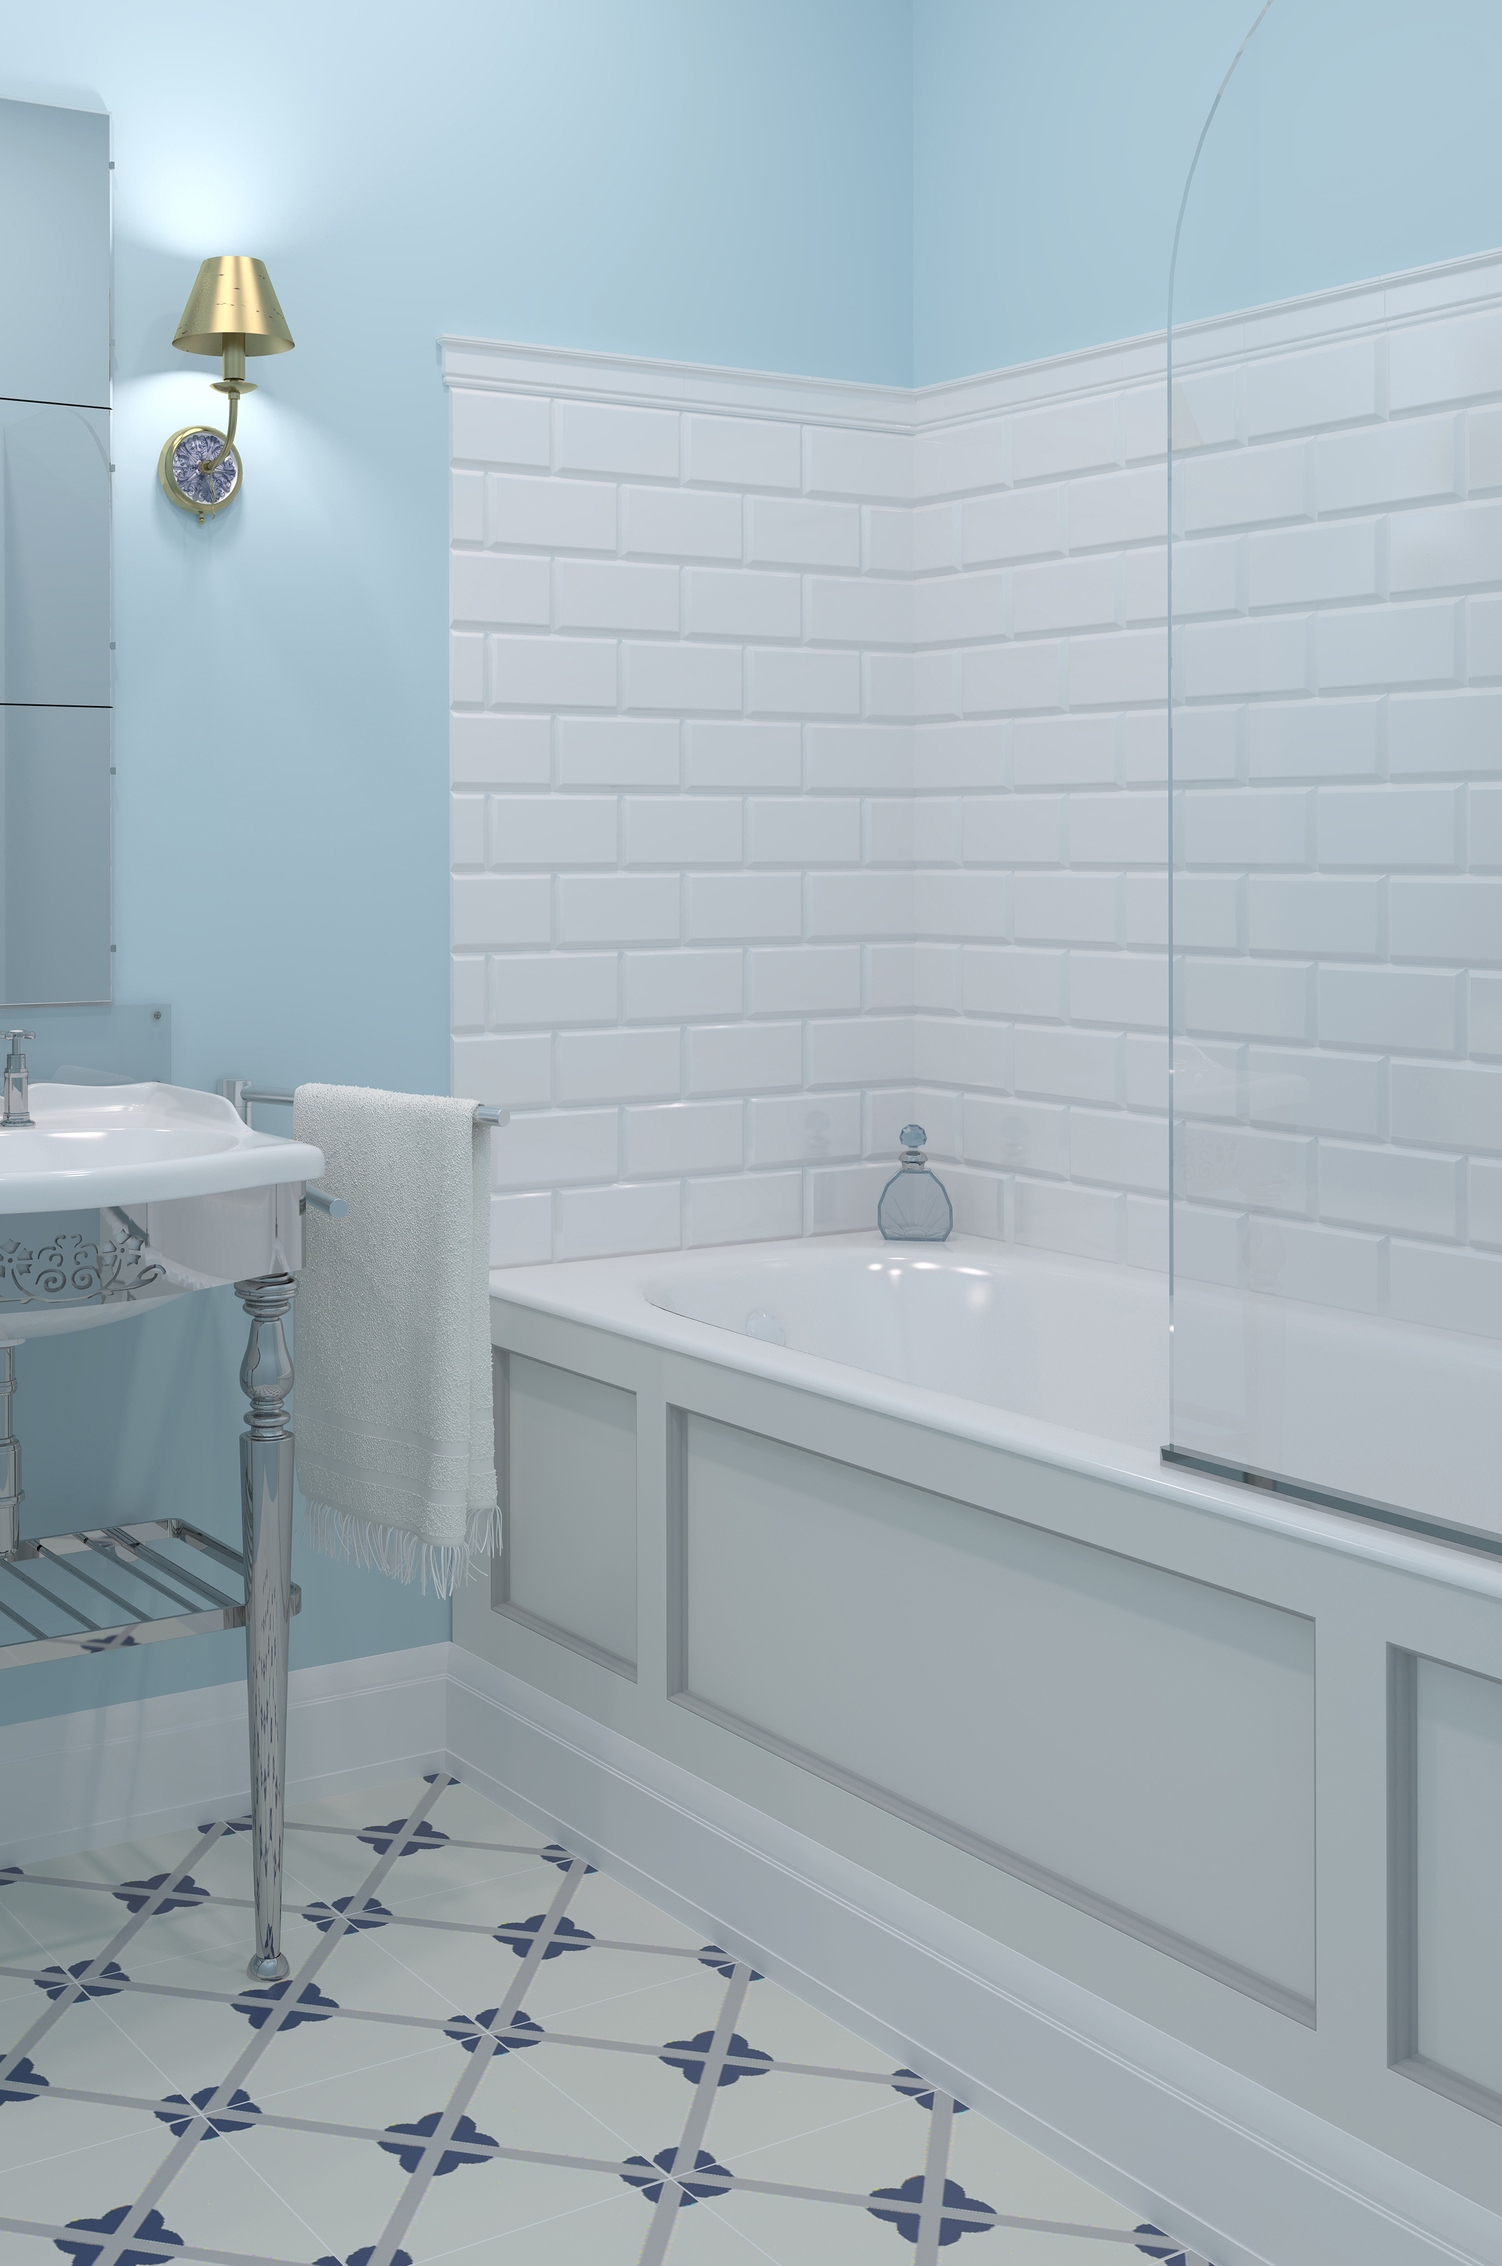 Small blue with white bathroom in modern house